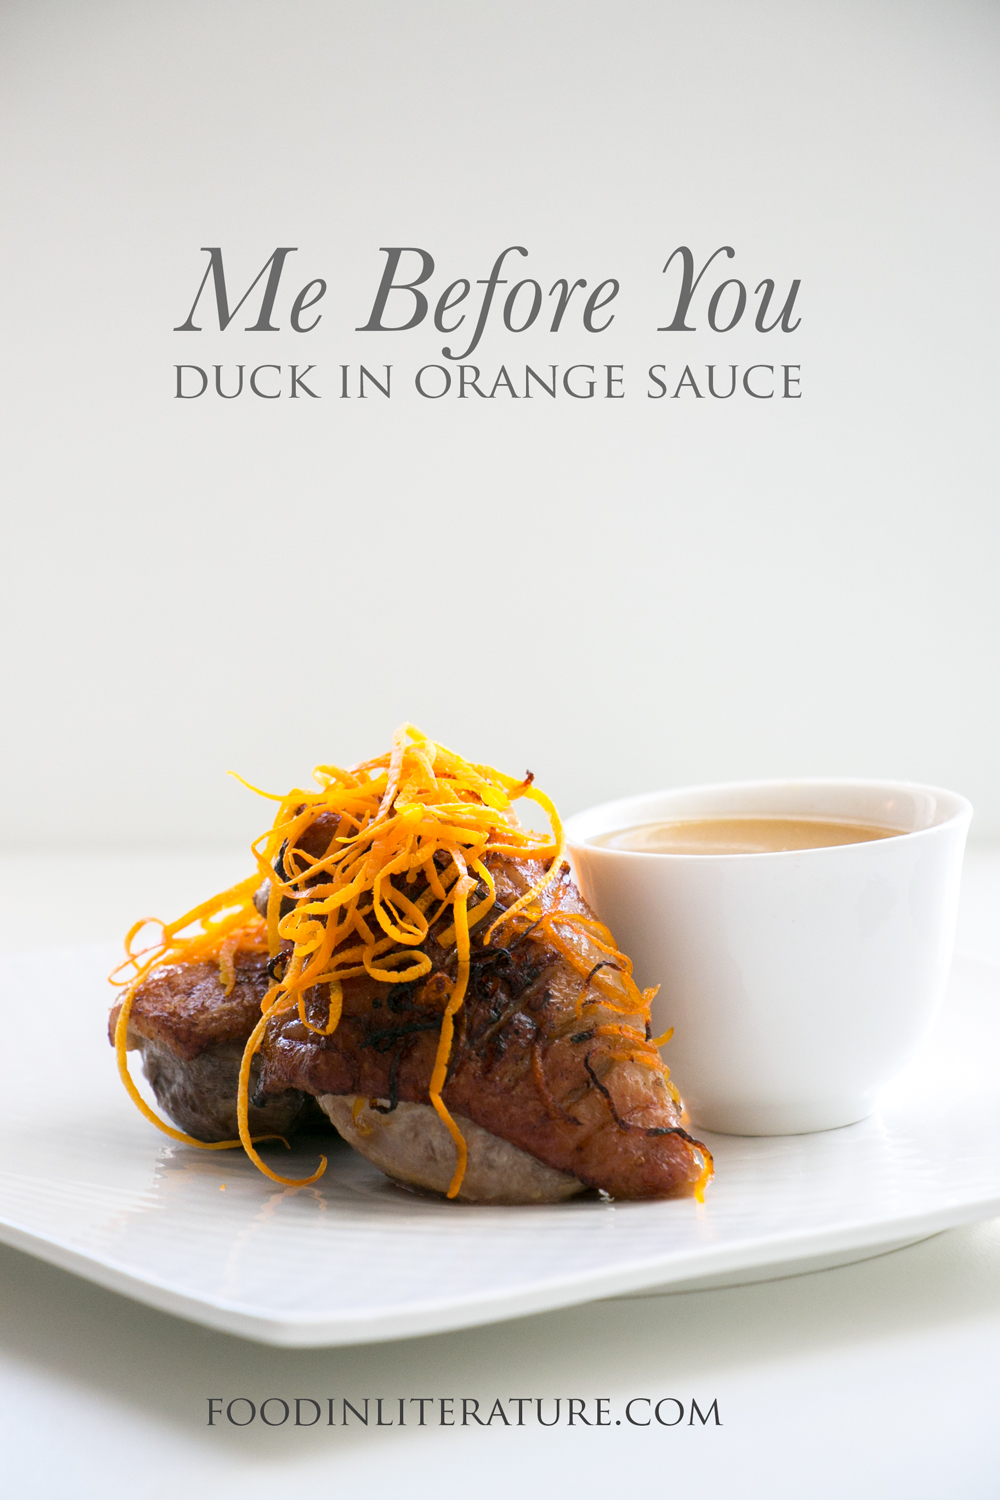 Celebrate the movie 'Me Before You', based on a favourite YA novel, with this Duck in Orange Sauce recipe.